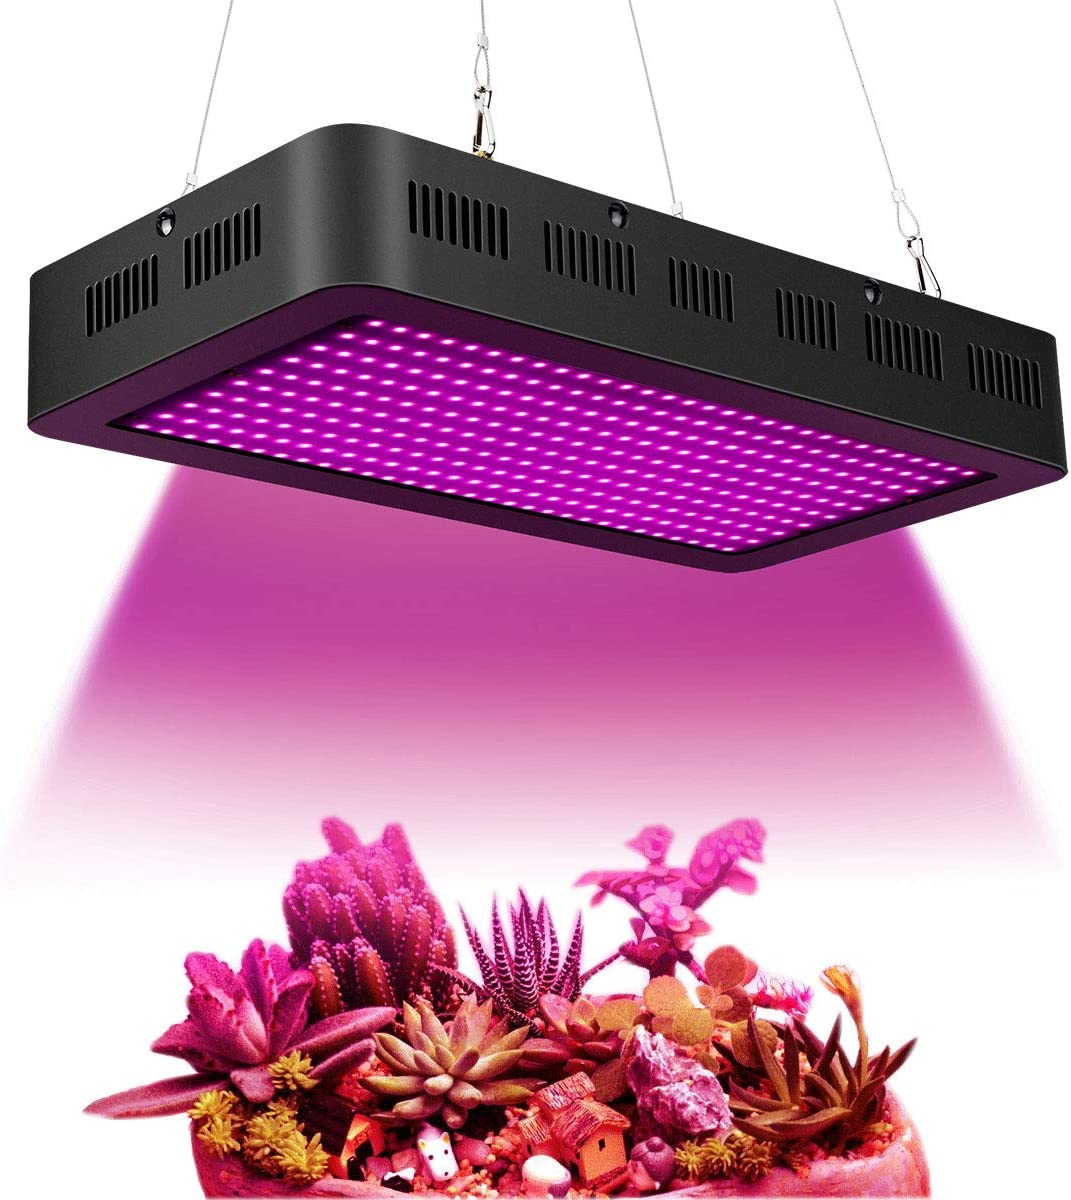 1500W Full Spectrum Grow Light 380 850nm Red UV IR Hydroponics Grow Light LED for Greenhouse Growing and Flowering